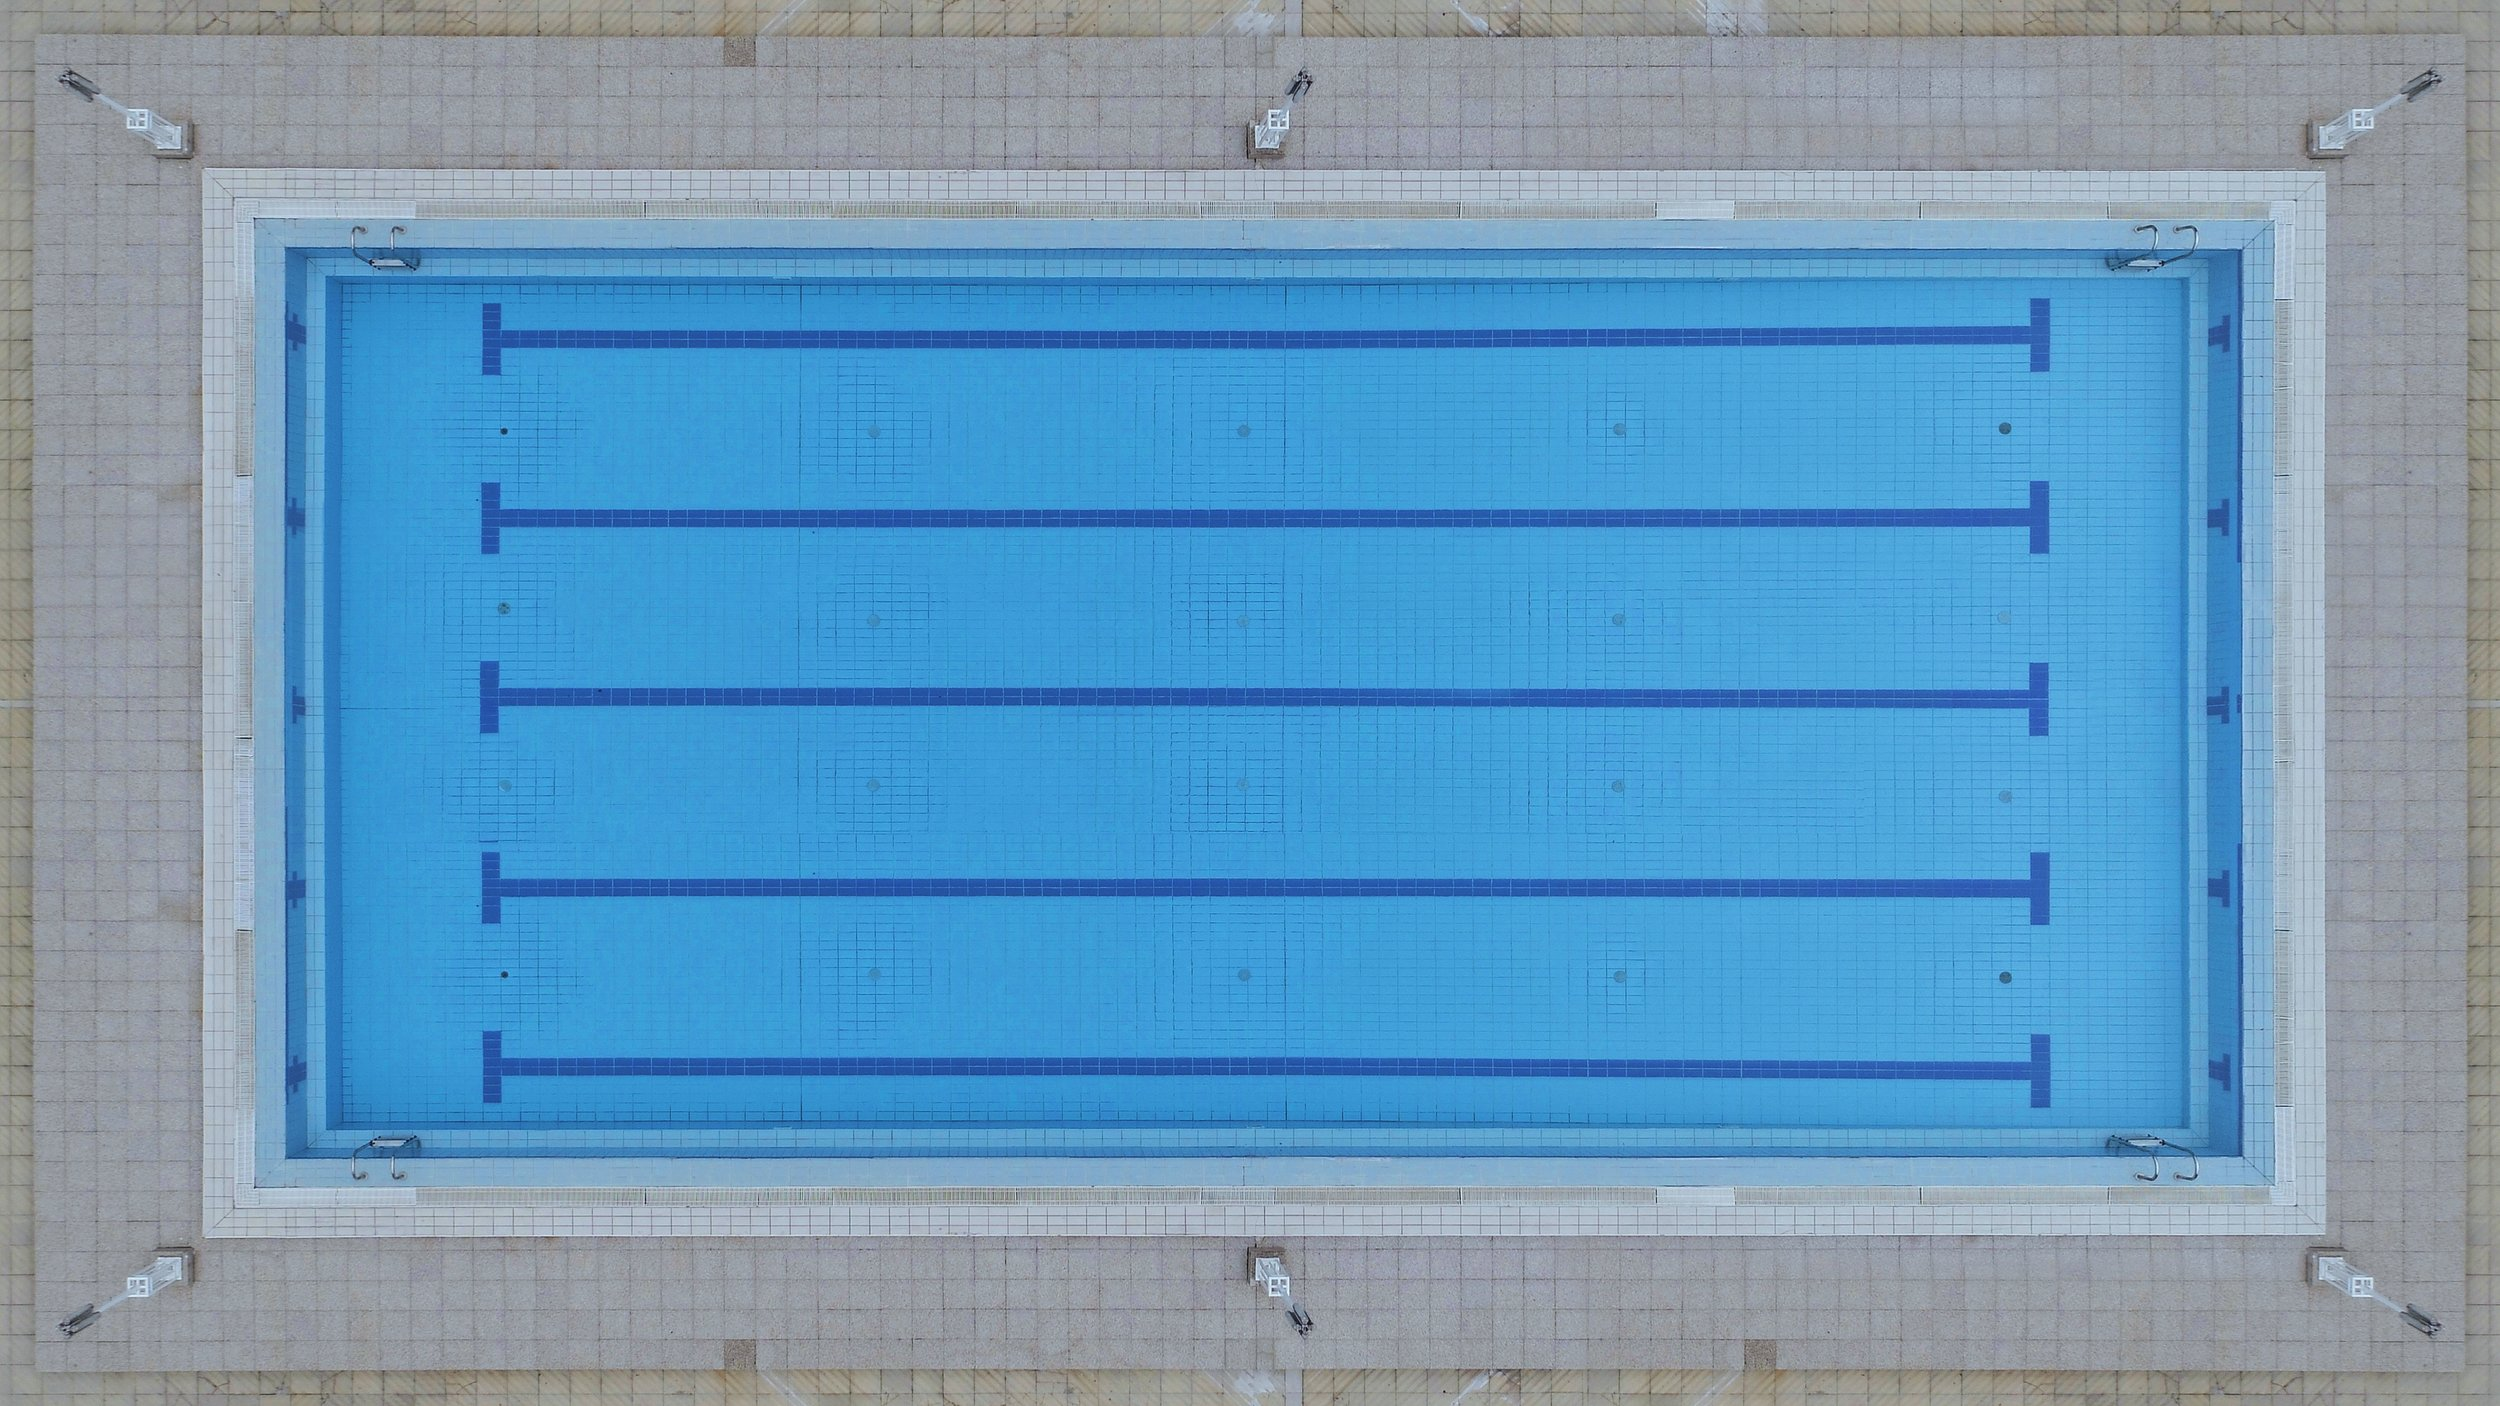 Just a pool, not the Roosevelt pool…